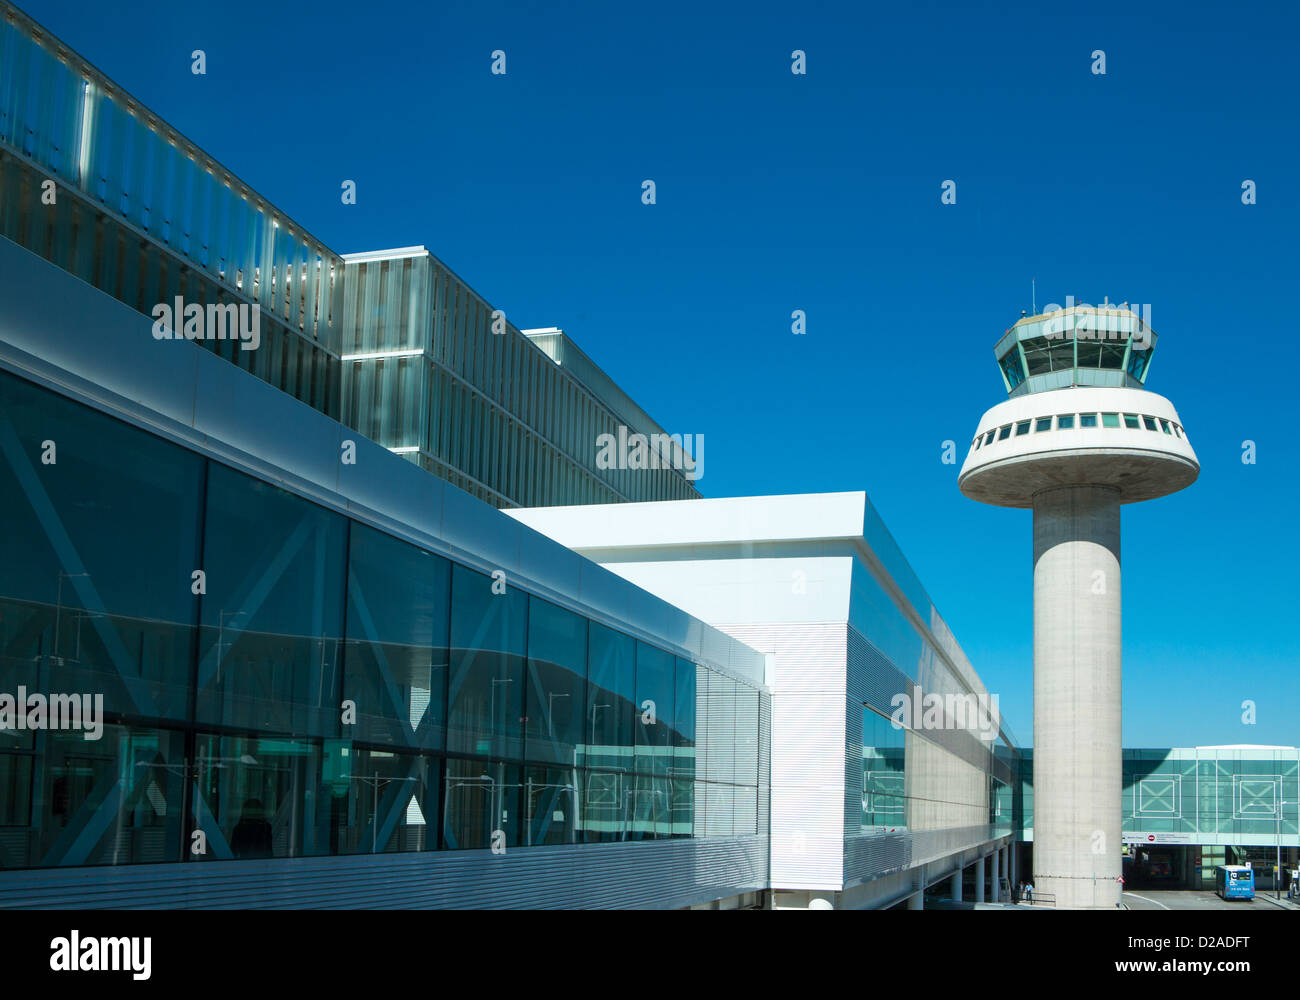 Spain, Barcelona, the Terminal T1 of the new airport designed by the architets Bofil and Ferrater. - Stock Image